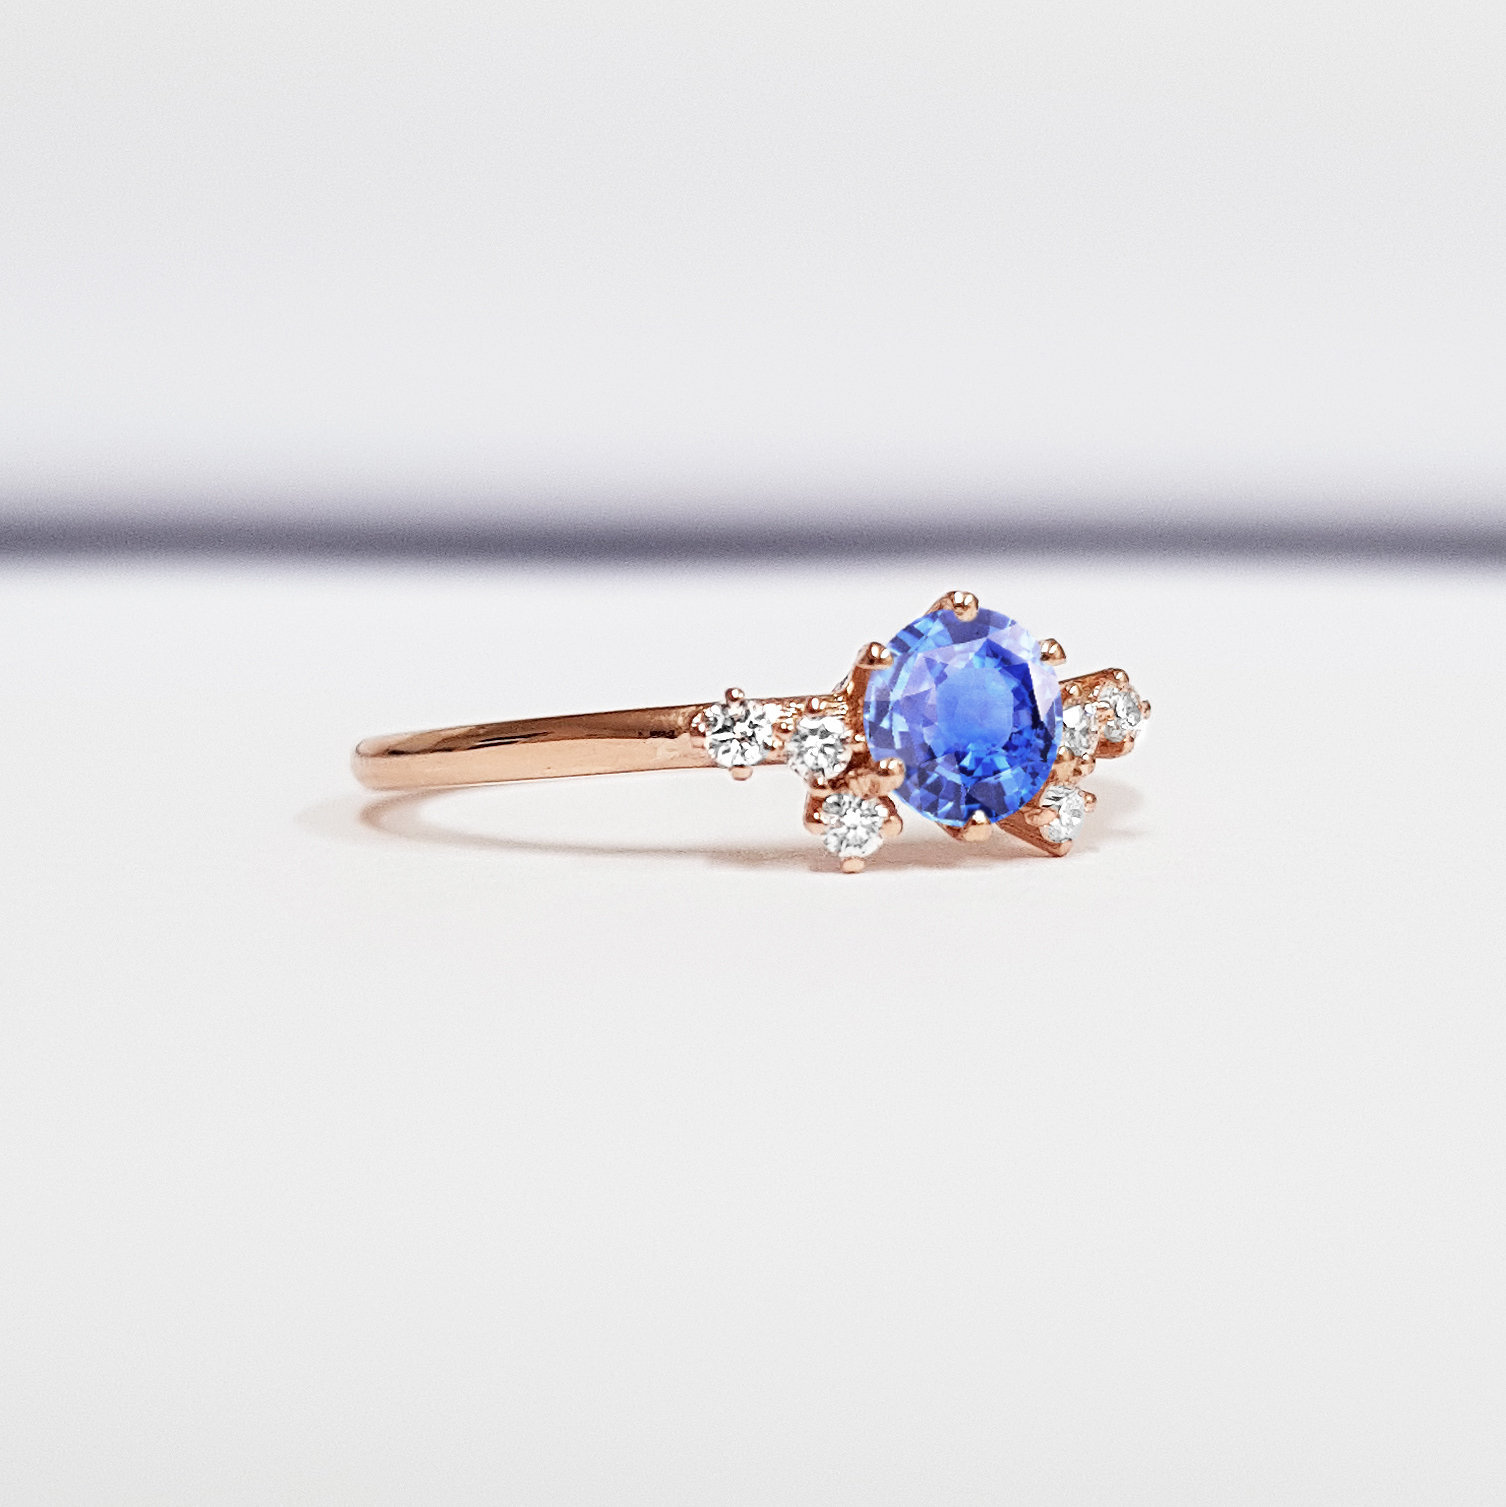 Which is the best blue sapphire engagement ring for her?